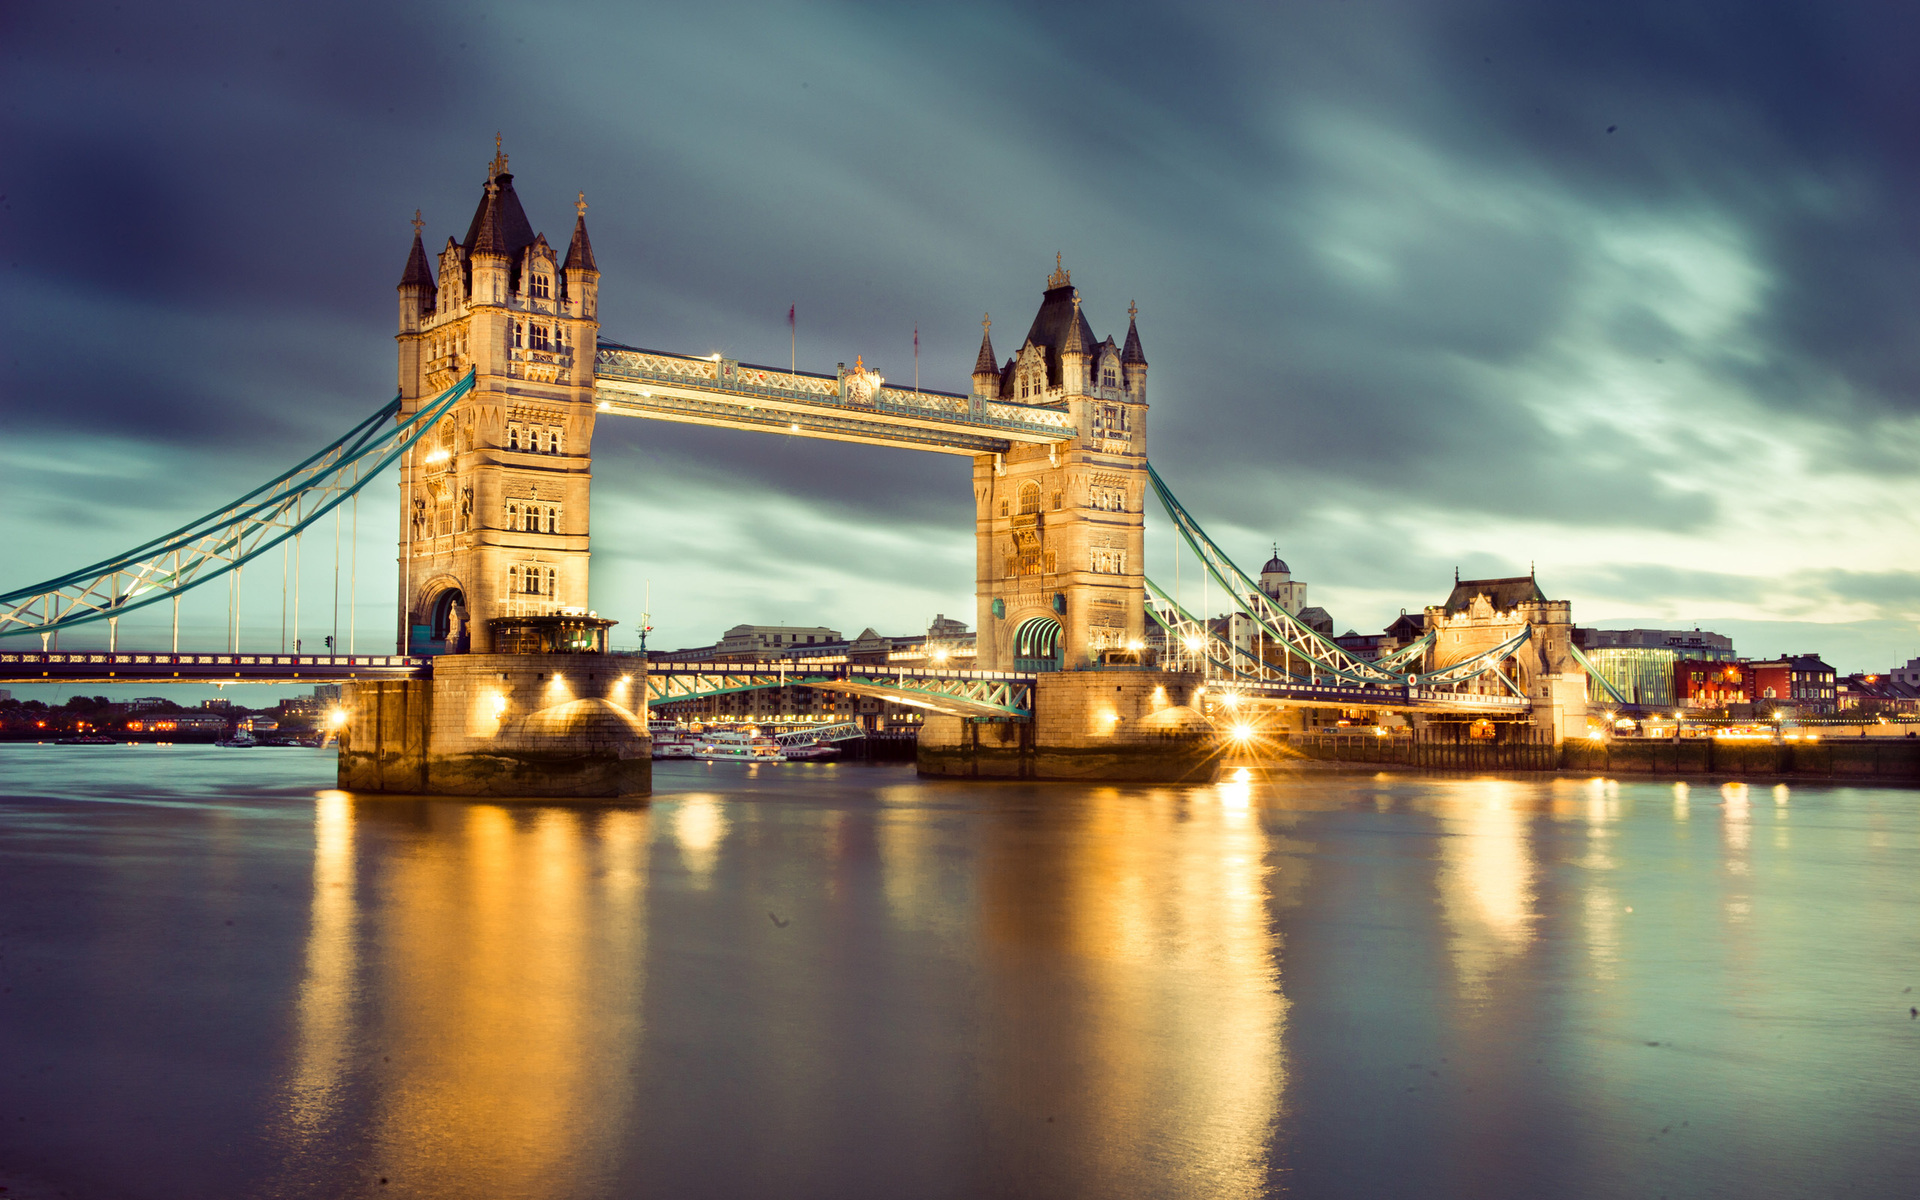 1920x1200 HD UK Wallpapers Depict The beautiful Images Of British ...